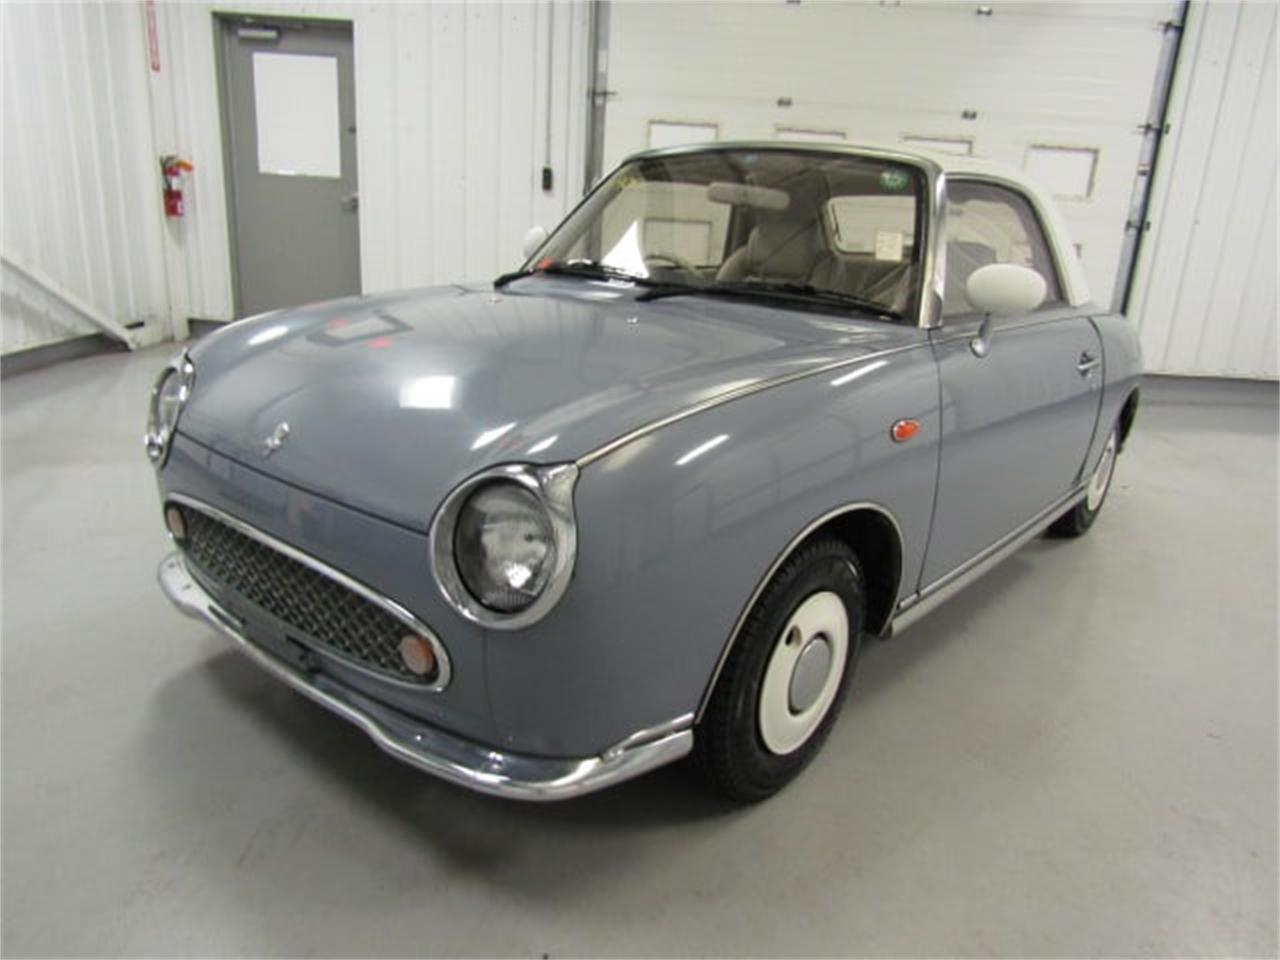 Large Picture of '91 Nissan Figaro located in Christiansburg Virginia - $21,900.00 Offered by Duncan Imports & Classic Cars - LI27